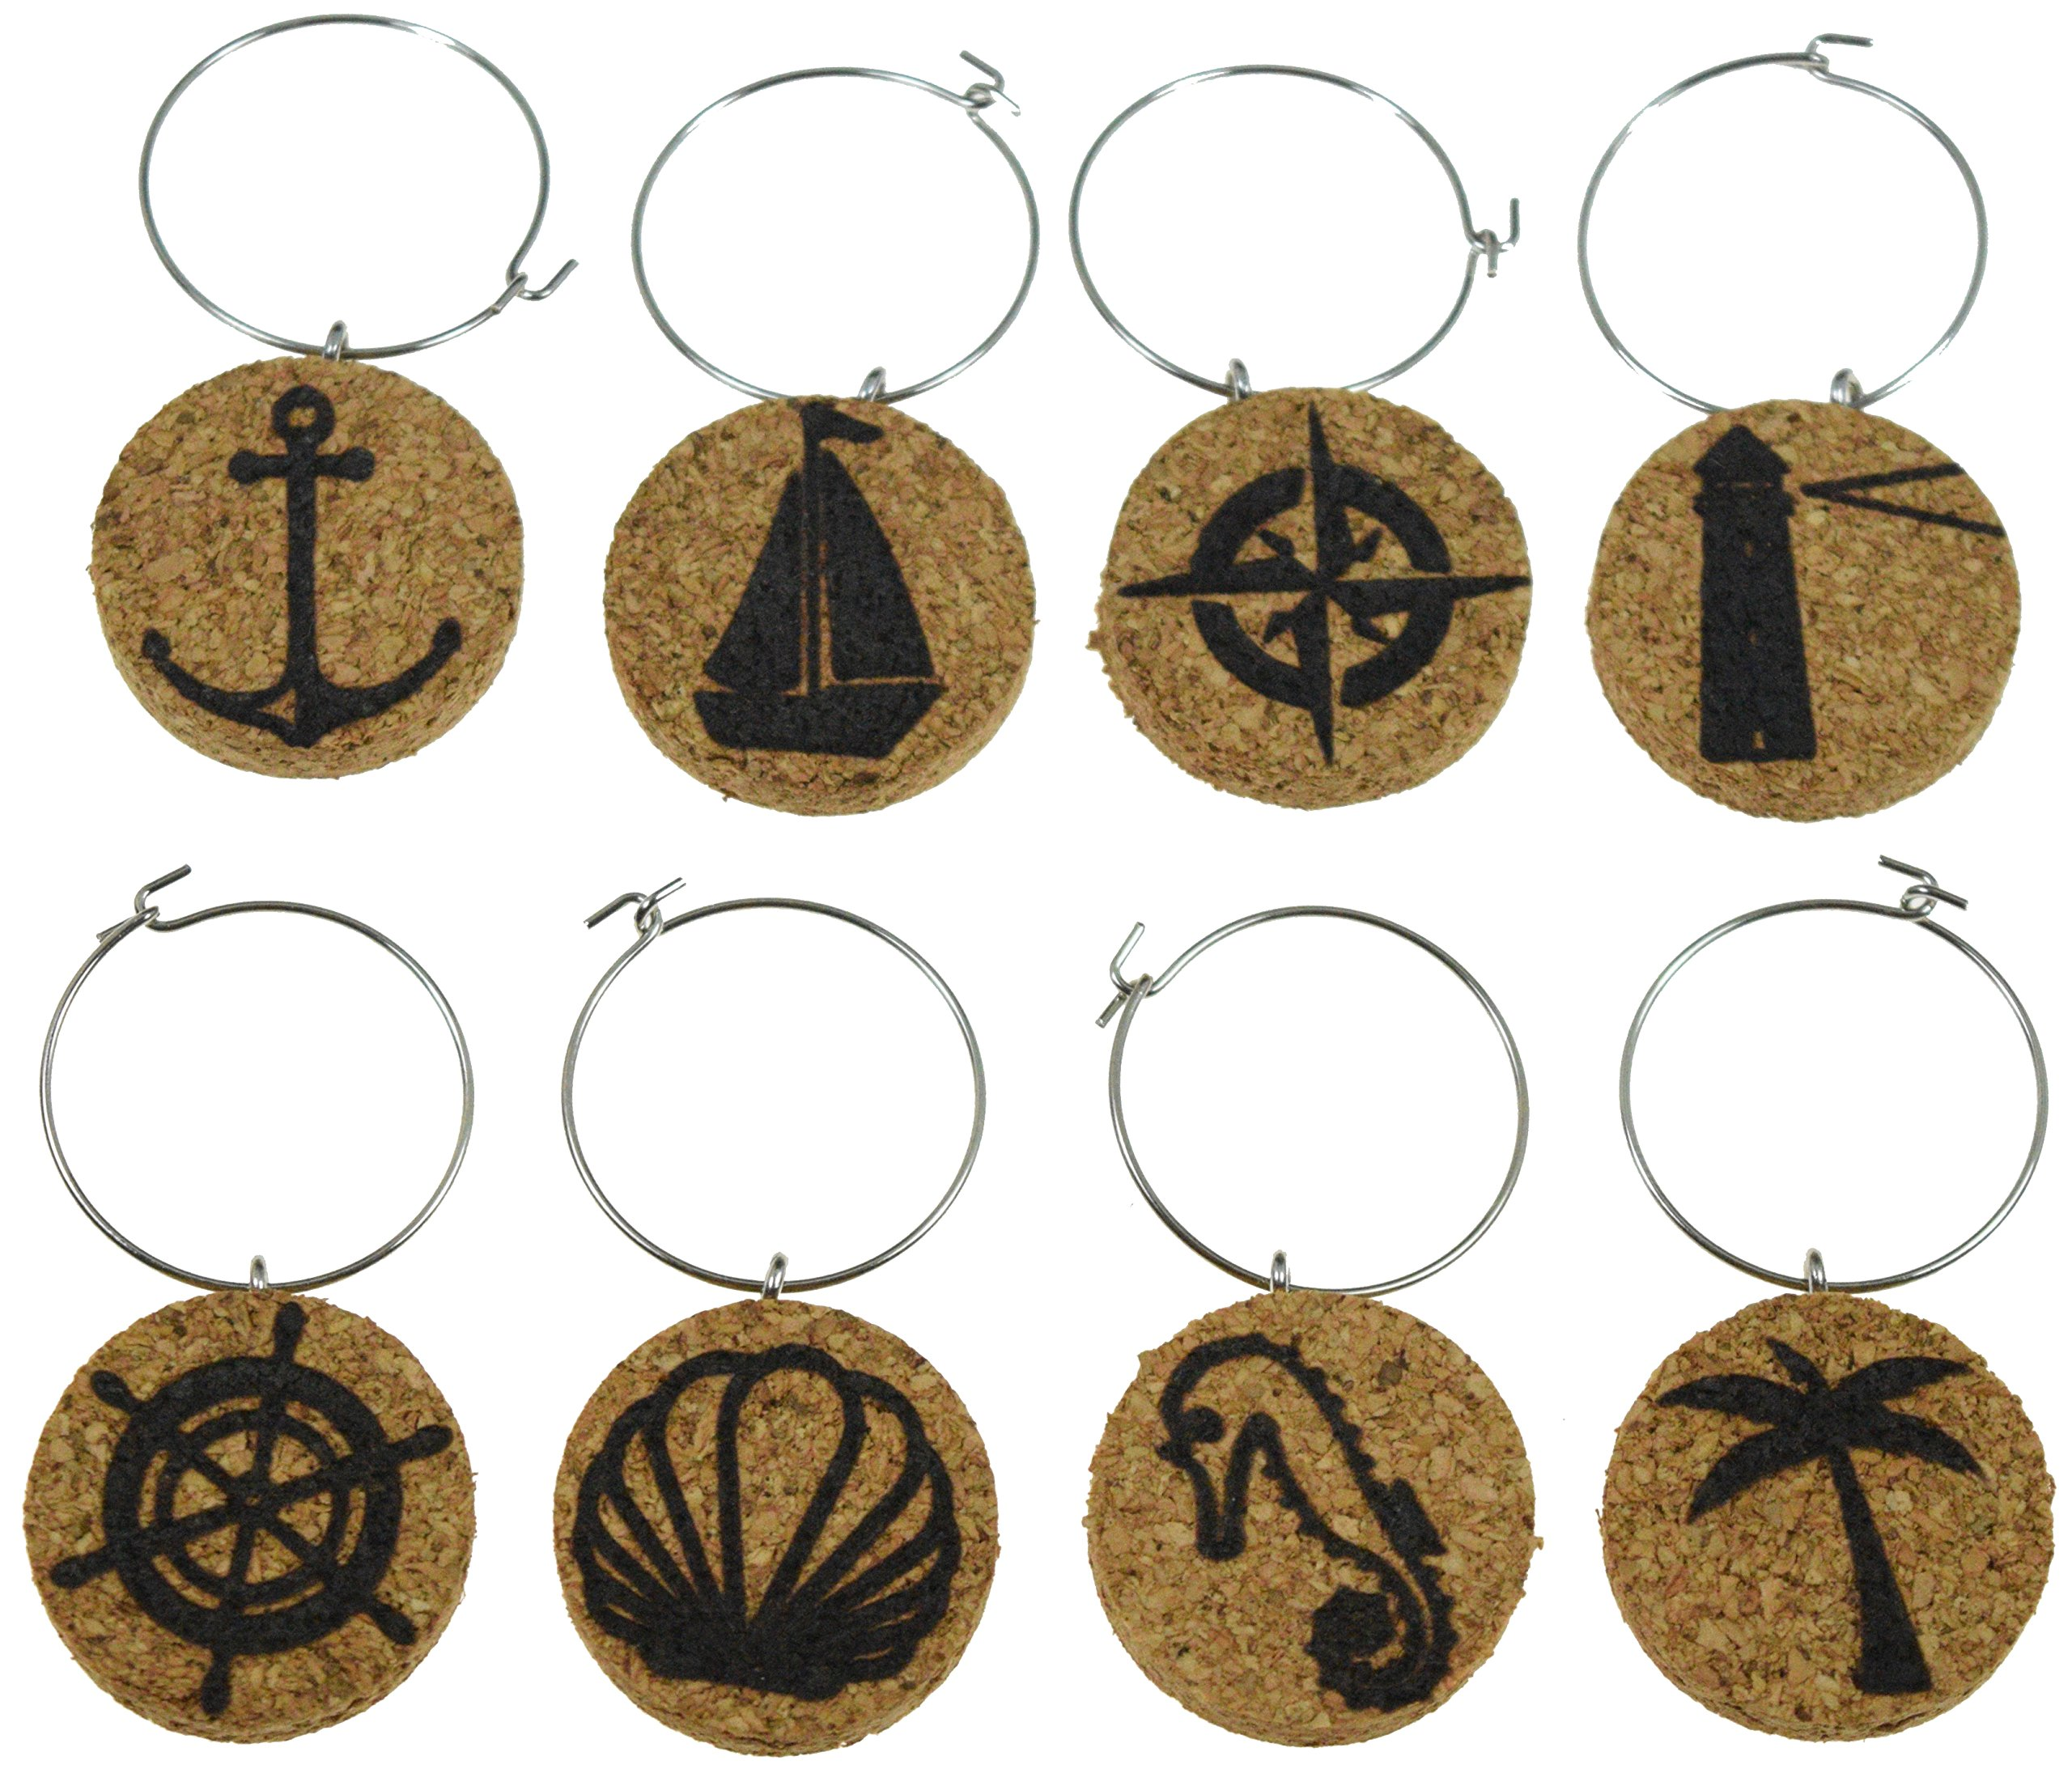 Cork Wine Glass Charms (20+ Unique Designs) - Set of 8 - Nautical Designs Including Anchor, Sail Boat, Compass, Light House, Palm Tree, Shell, Sea Horse - Tags to Mark Your Drinks … (Nautical)